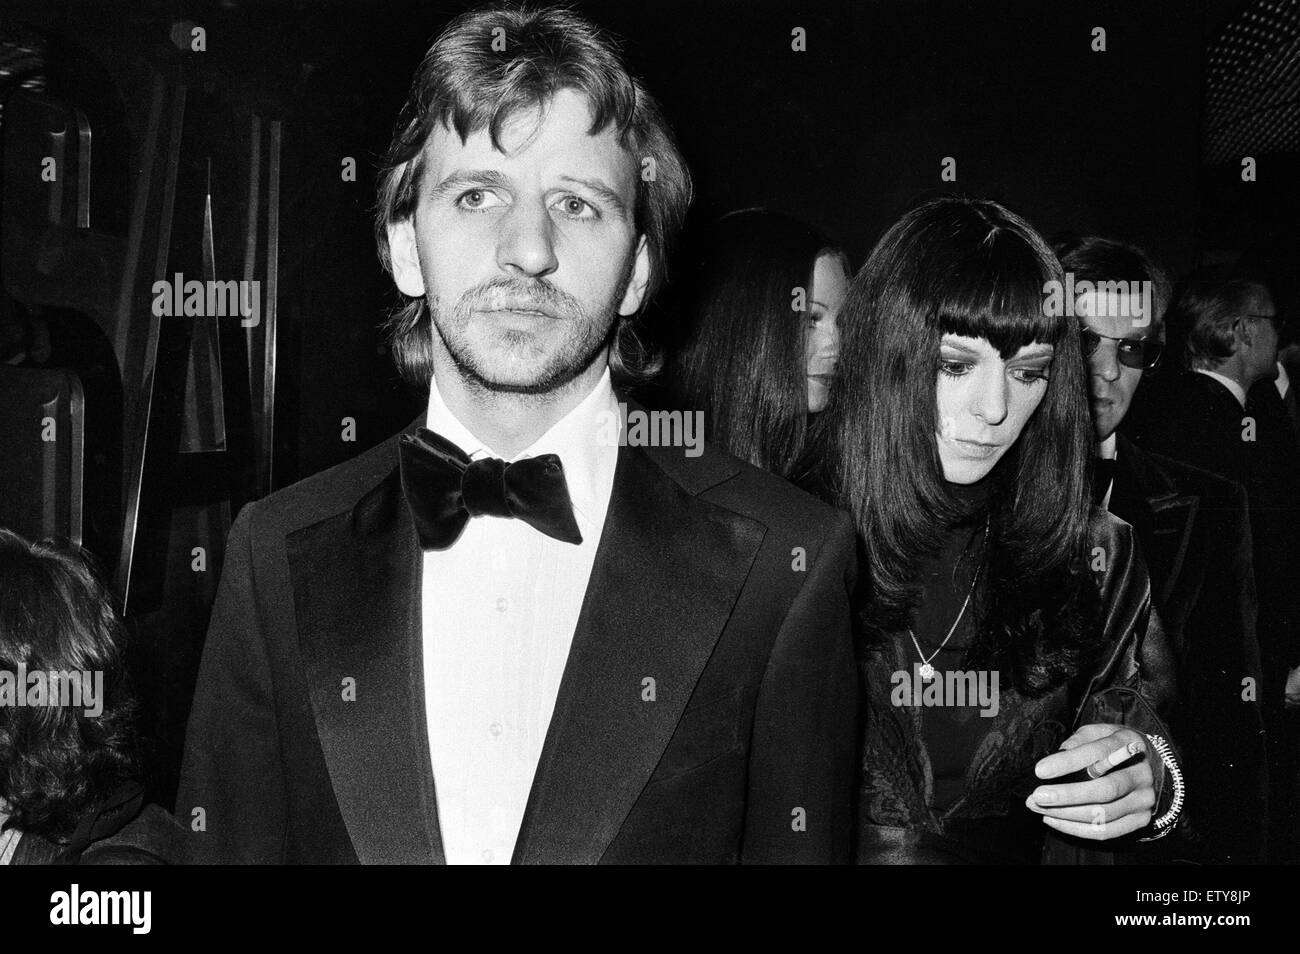 Former Beatles Drummer Ringo Starr Attends The Premiere Of Paramount Film Godfather In Lower Regent Street 23rd August 1972